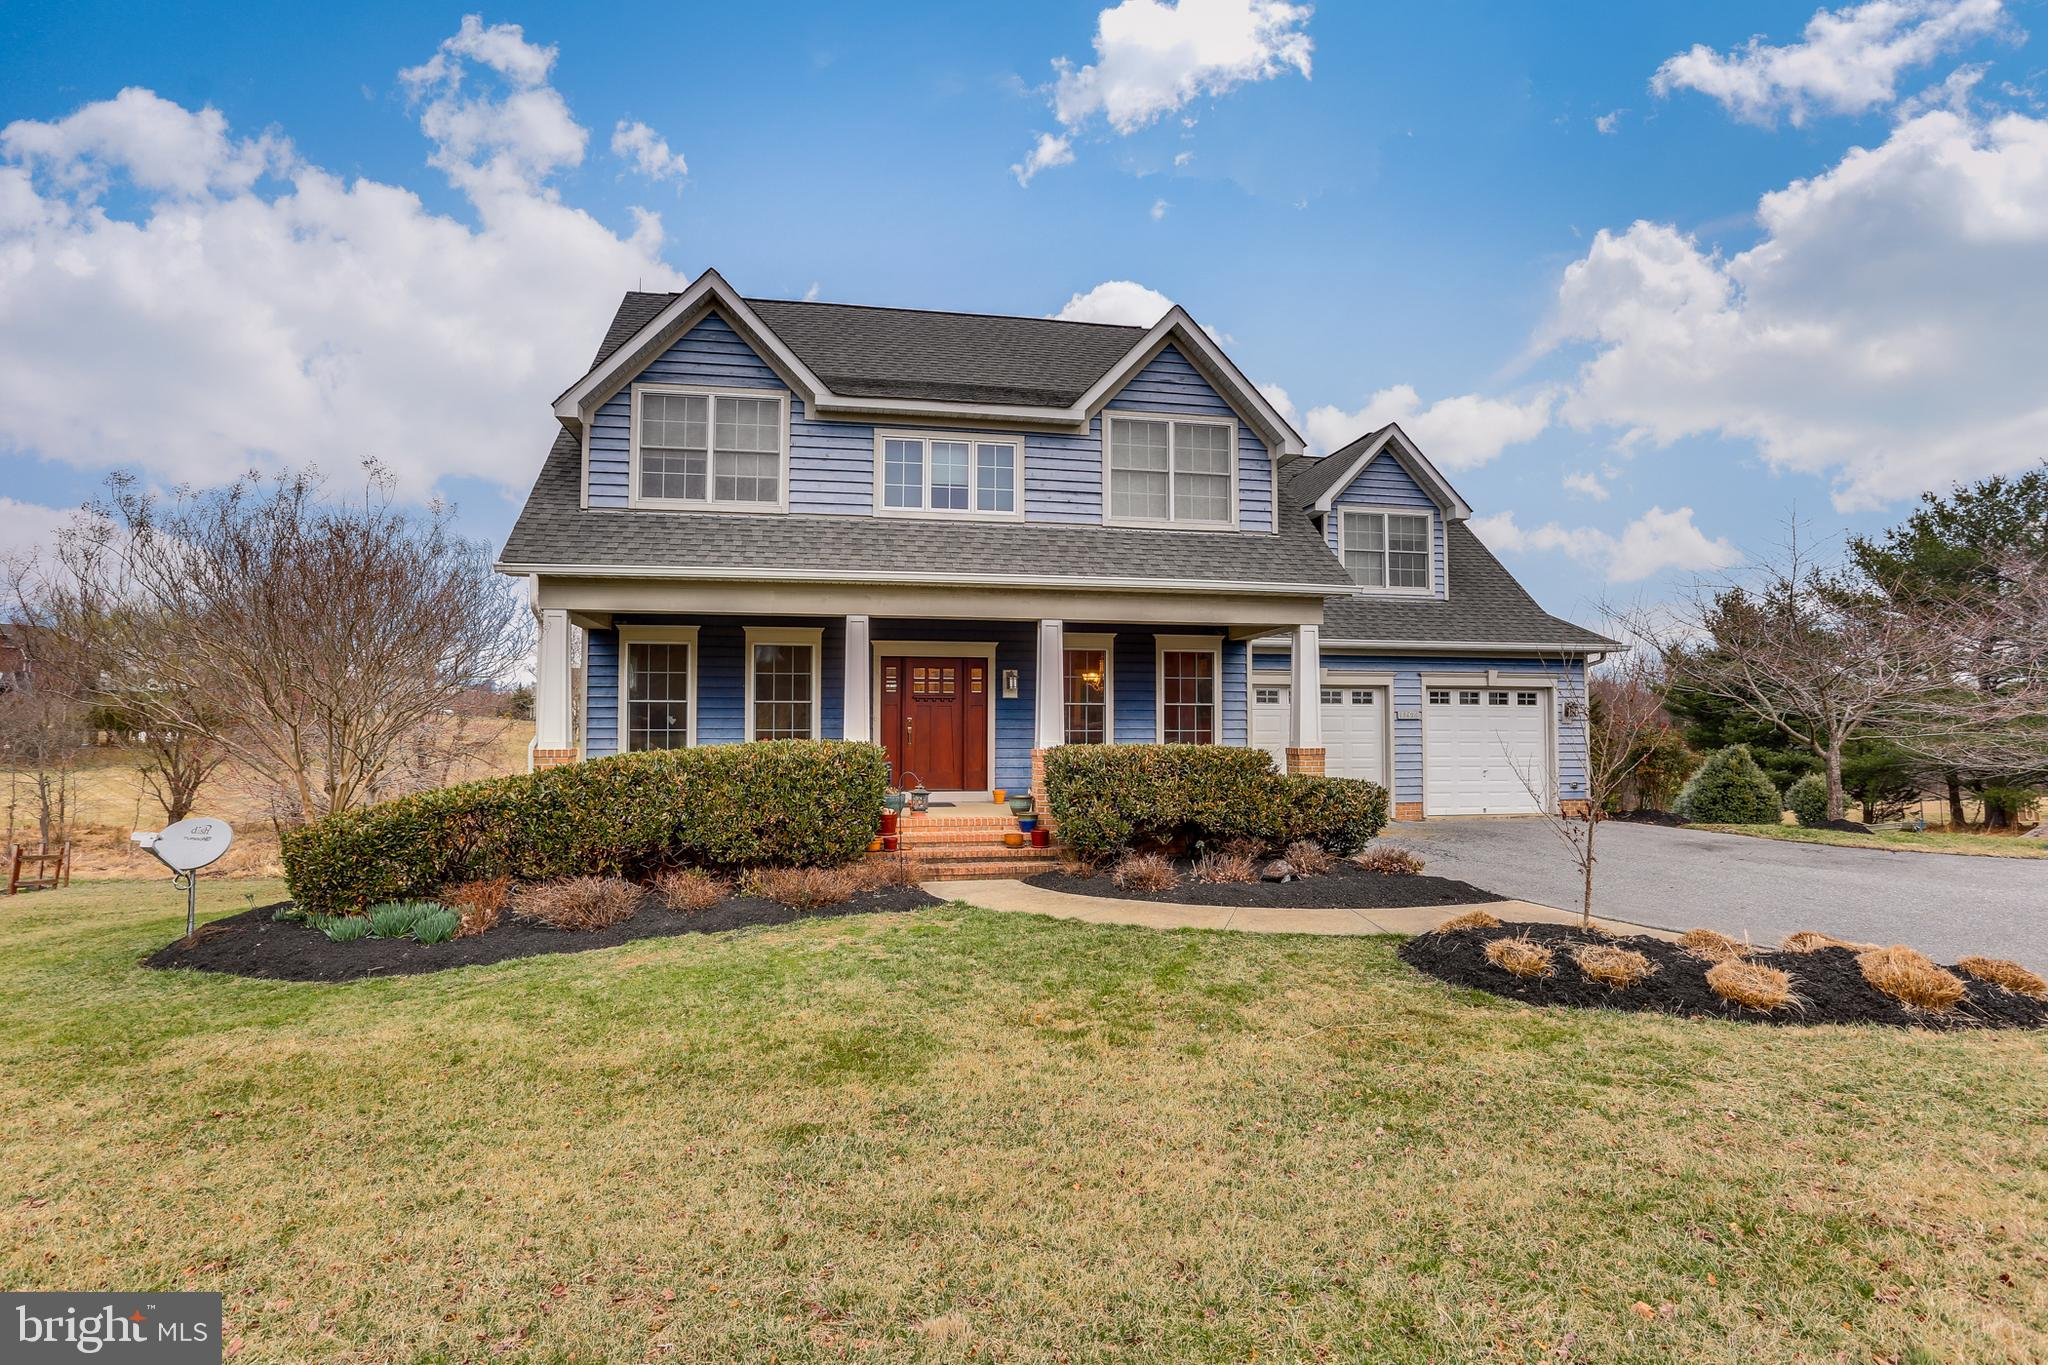 13496 ALLNUTT LANE, HIGHLAND, MD 20777